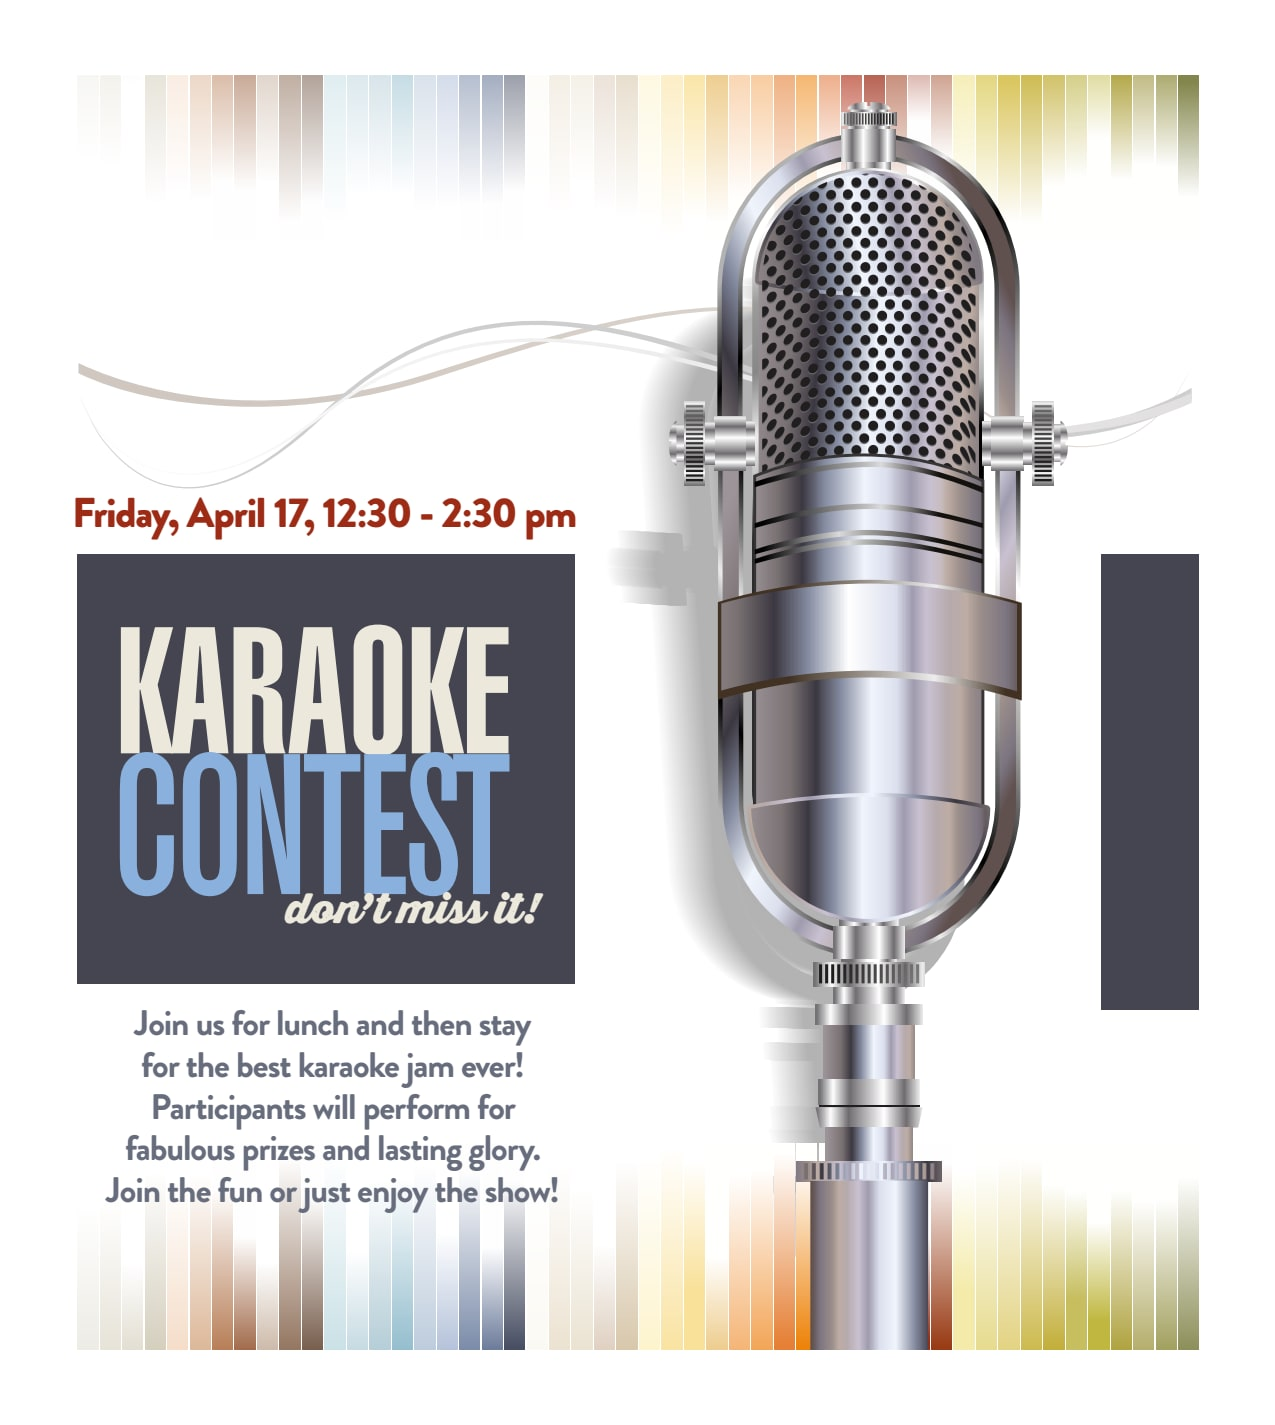 Karaoke Contest - activities at Benton House of Raymore in Raymore, MO